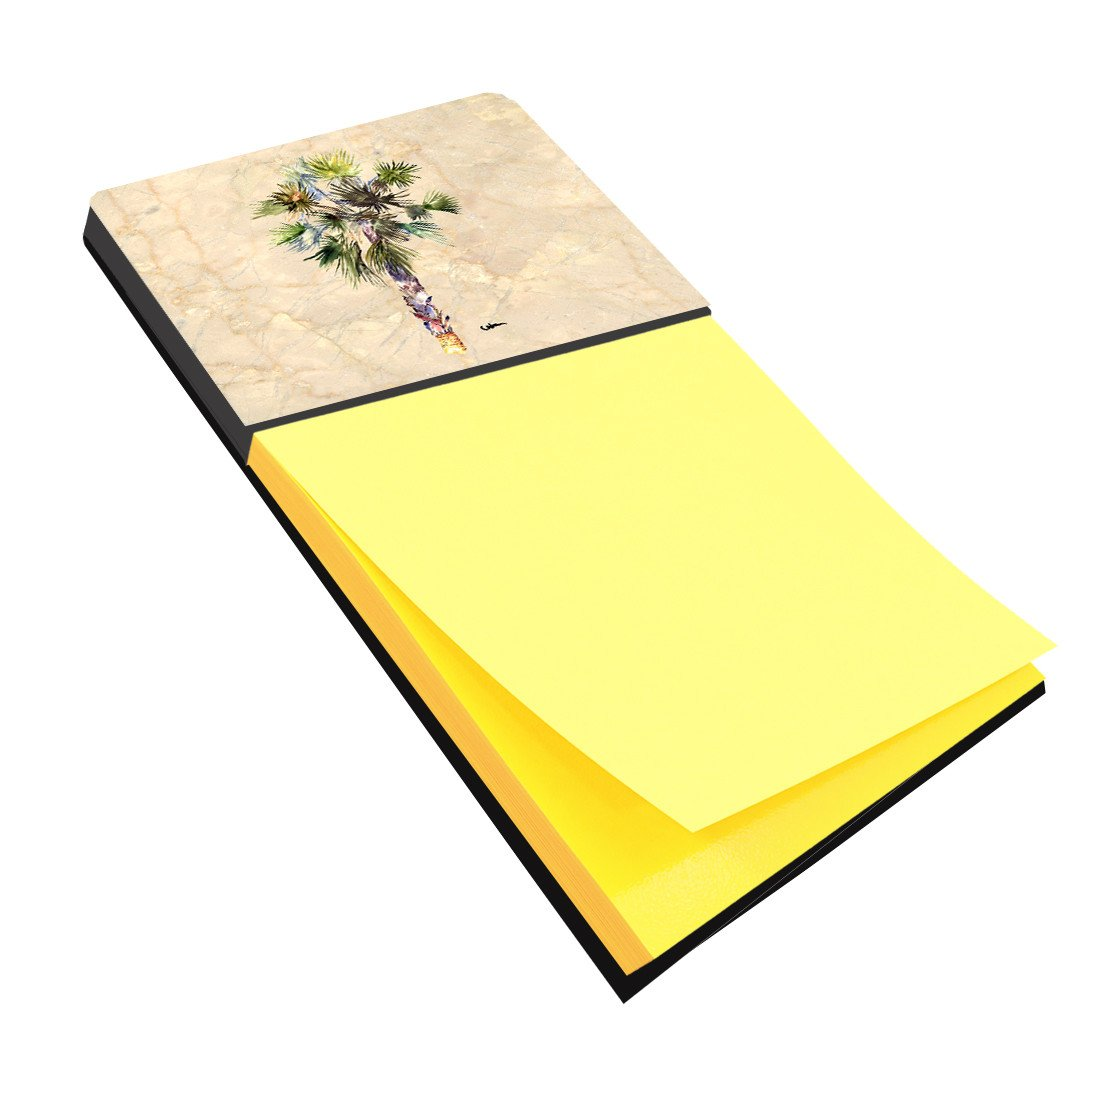 Palm Tree Refiillable Sticky Note Holder or Postit Note Dispenser 8481SN by Caroline's Treasures